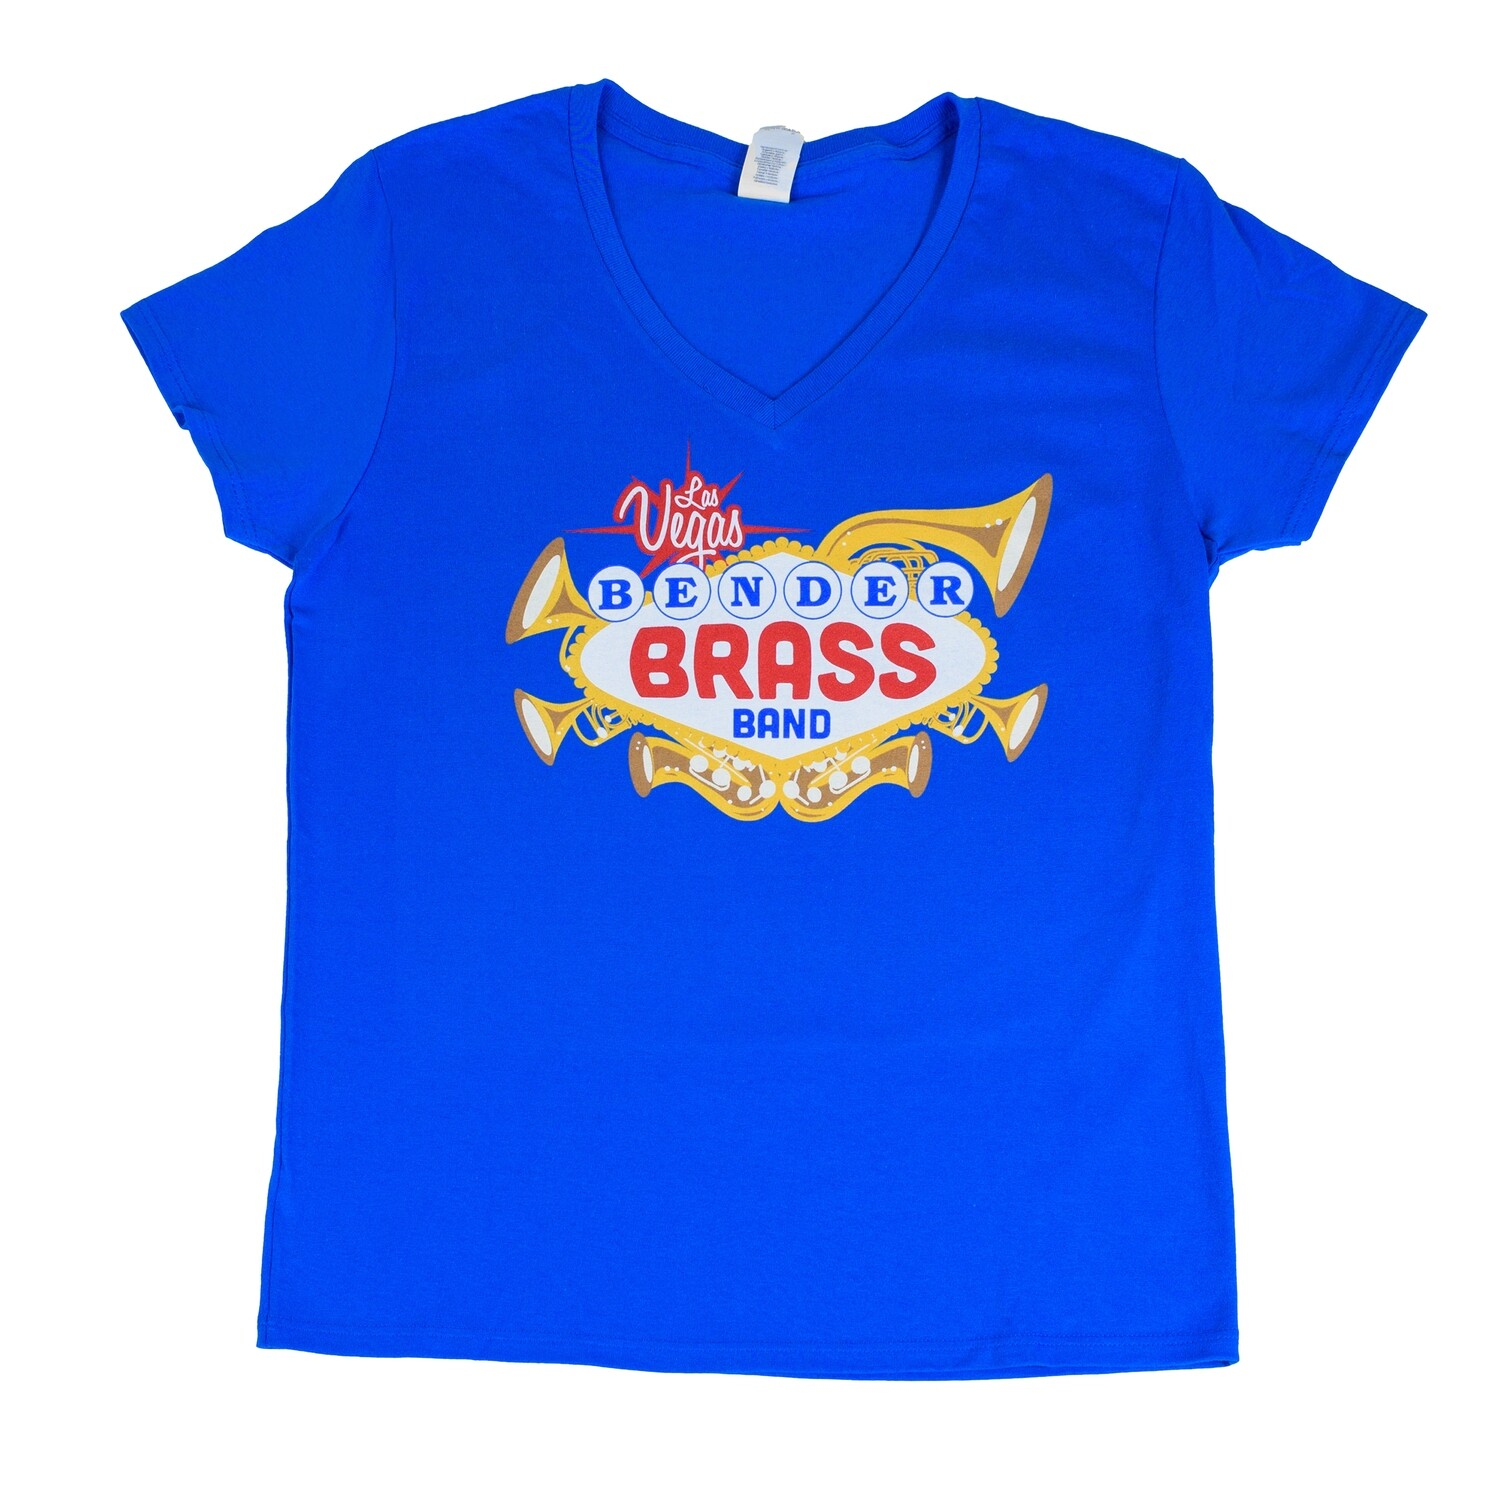 2019 Bender Brass Ladies Cut V-Neck, Royal Blue